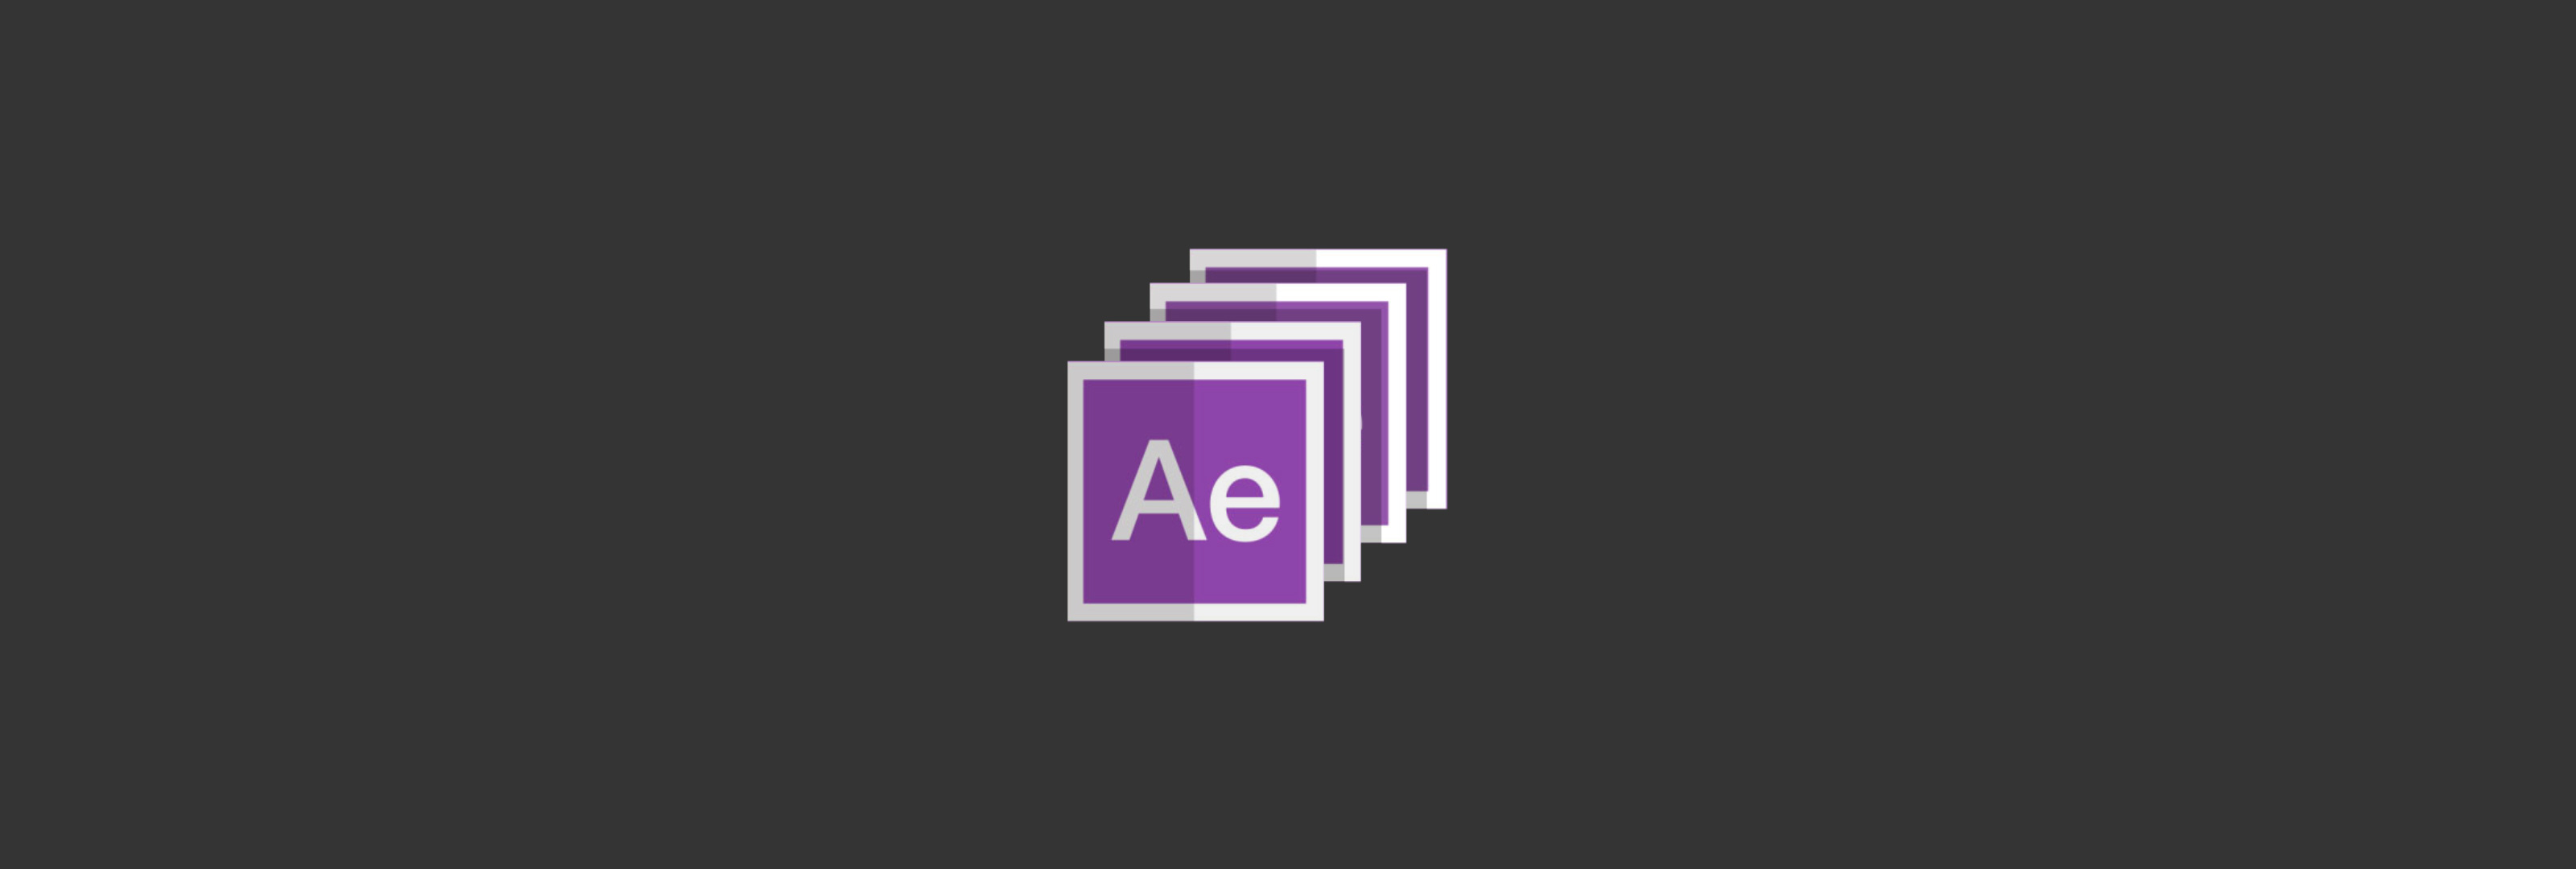 How To Use After Effects Templates In Your Project Workflow ...